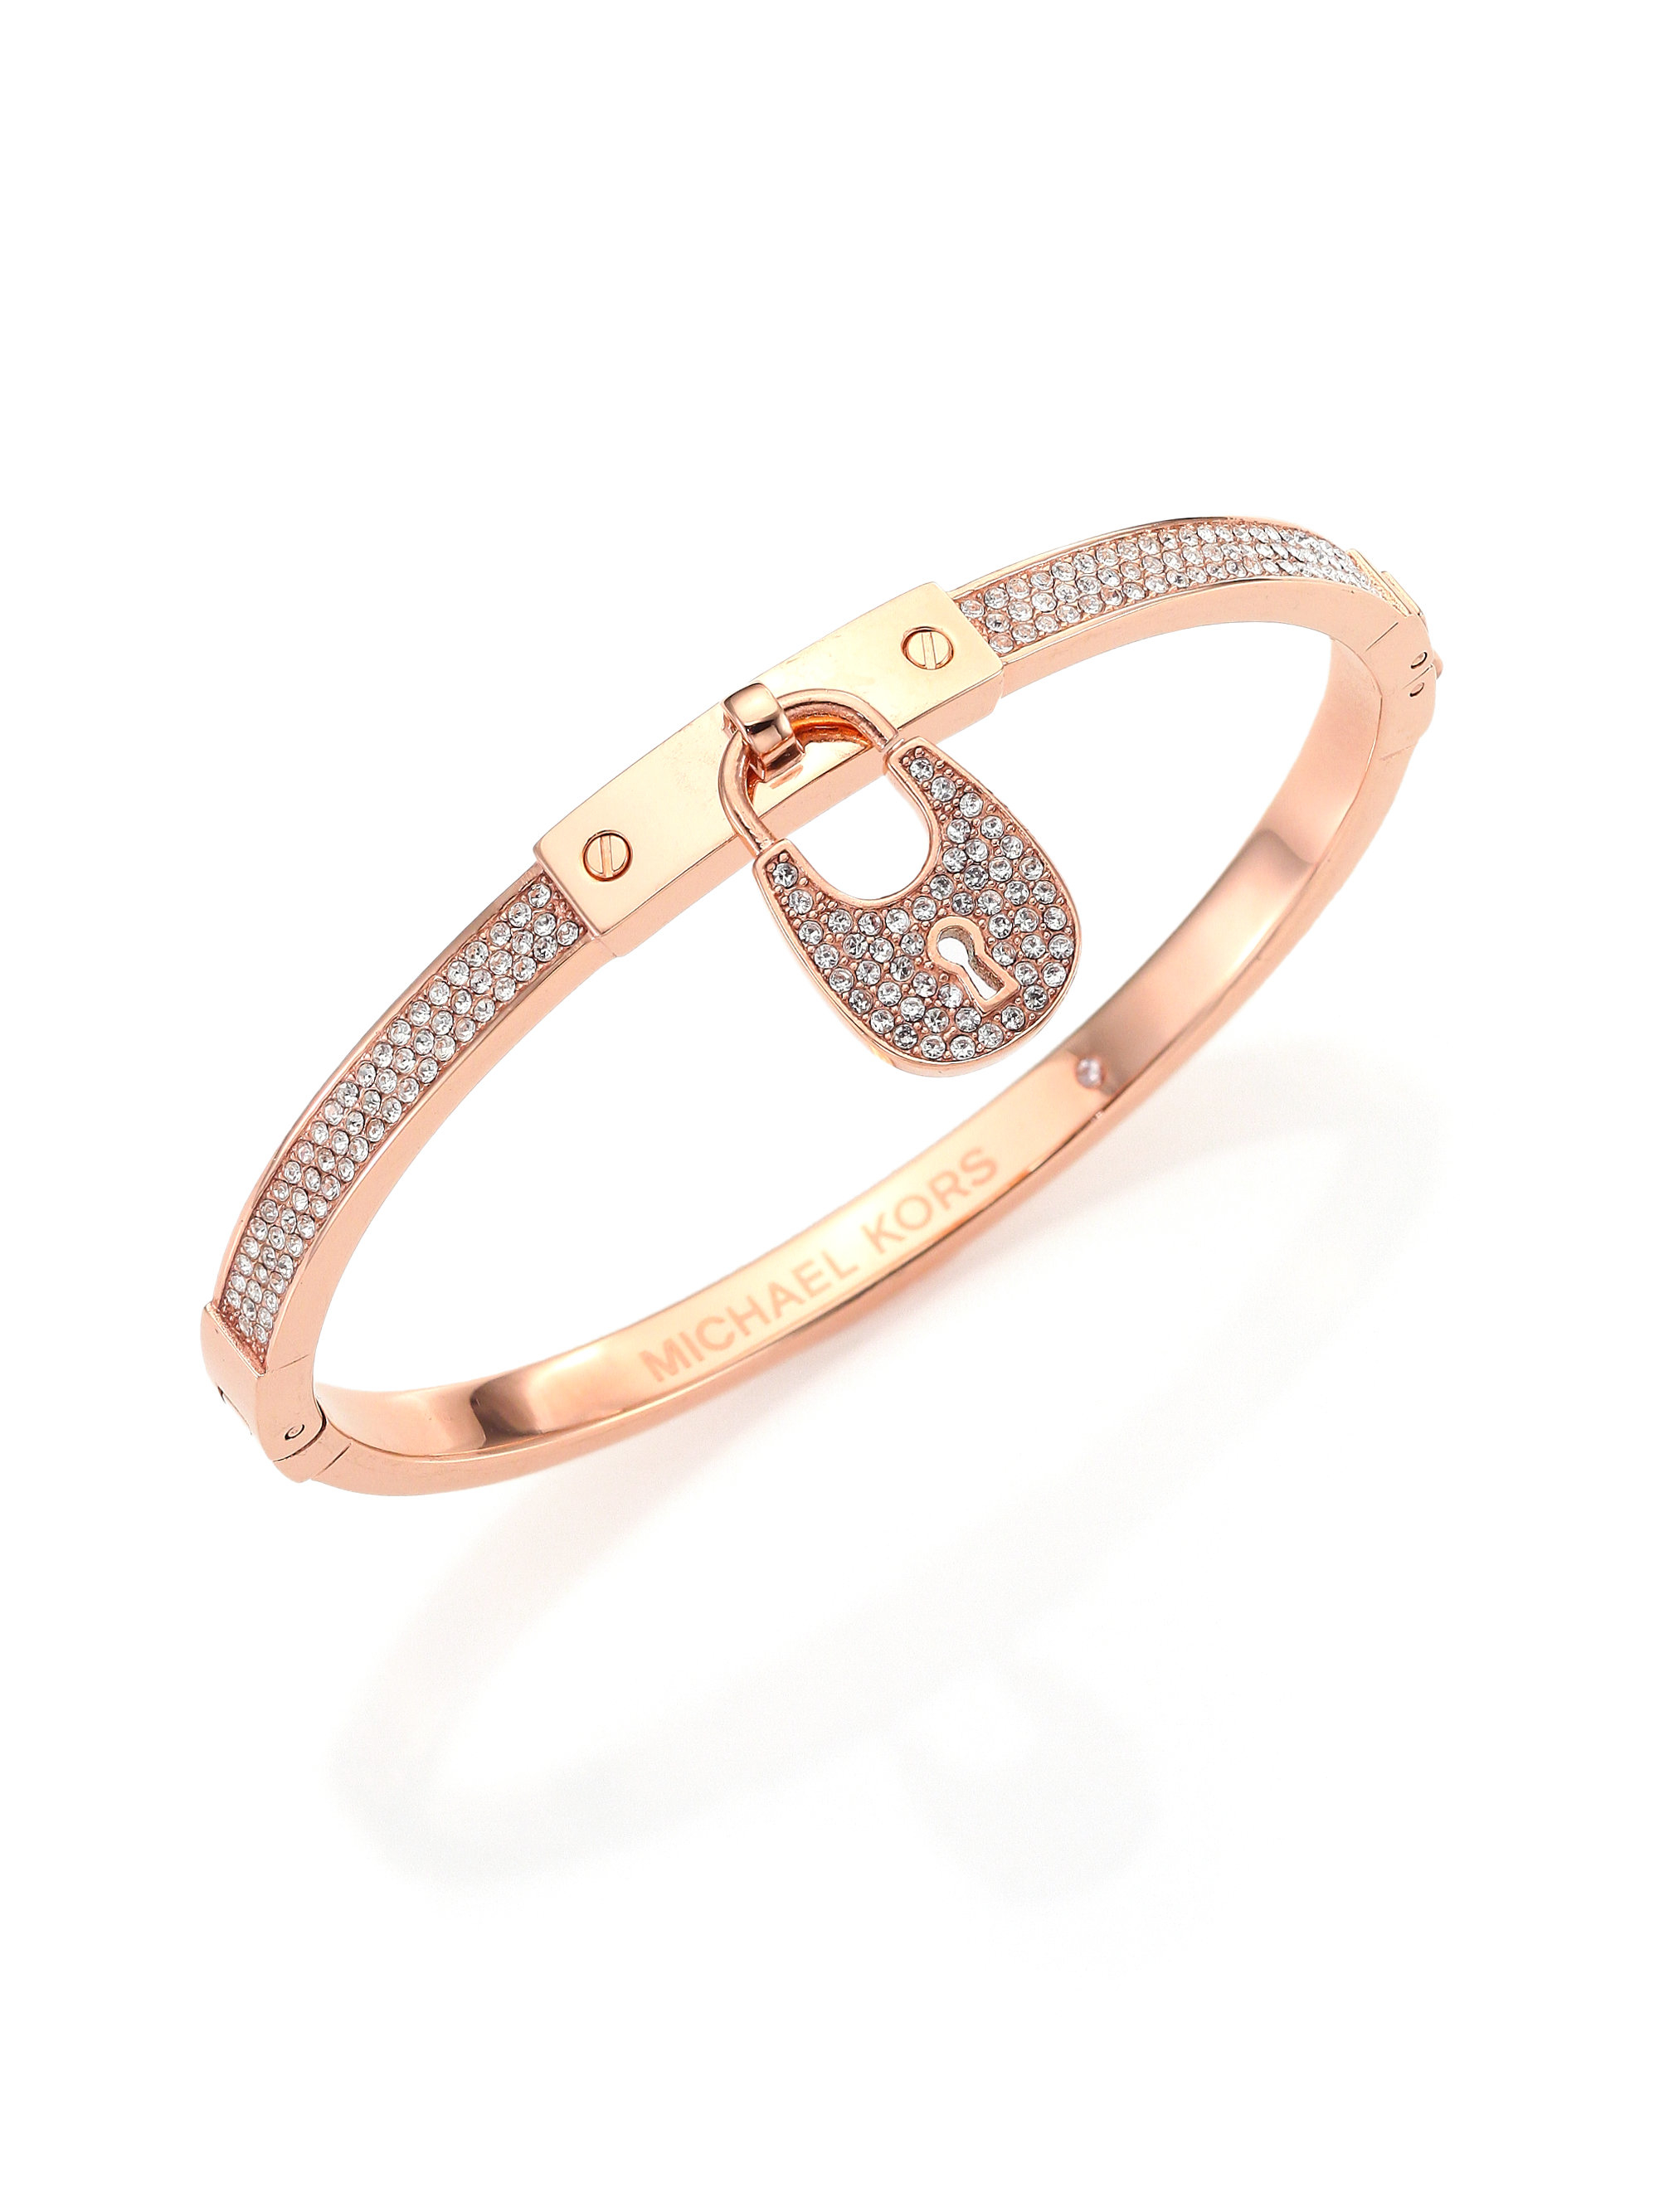 diamond small bangles overstock bangle bvlgari today jewelry rose bracelet free product watches gold shipping